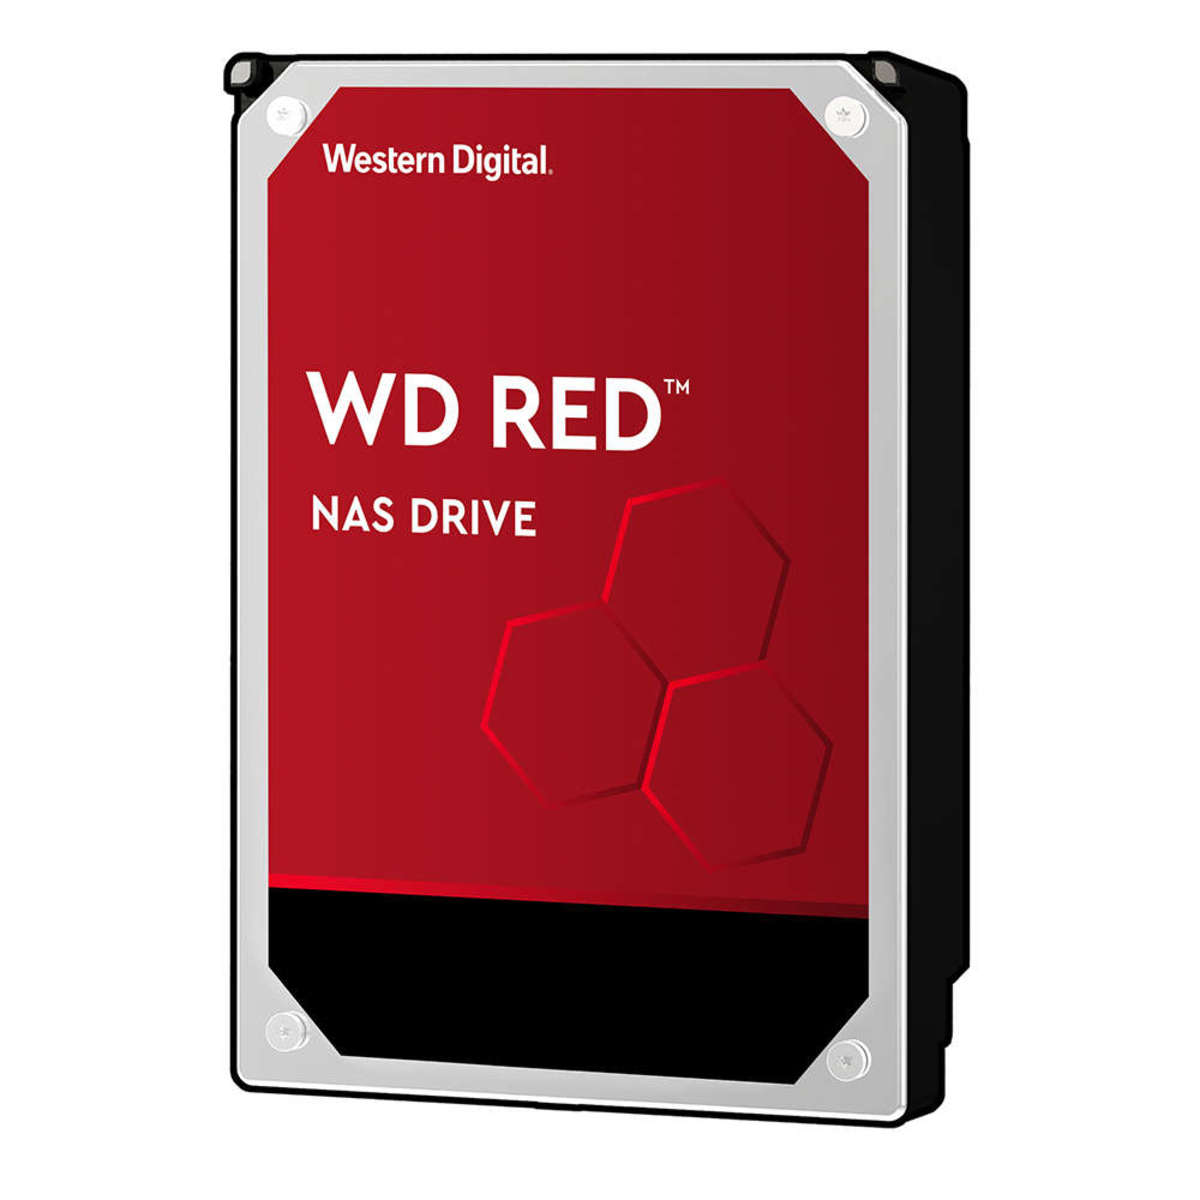 WD RED NAS HARD DRIVE 6TB